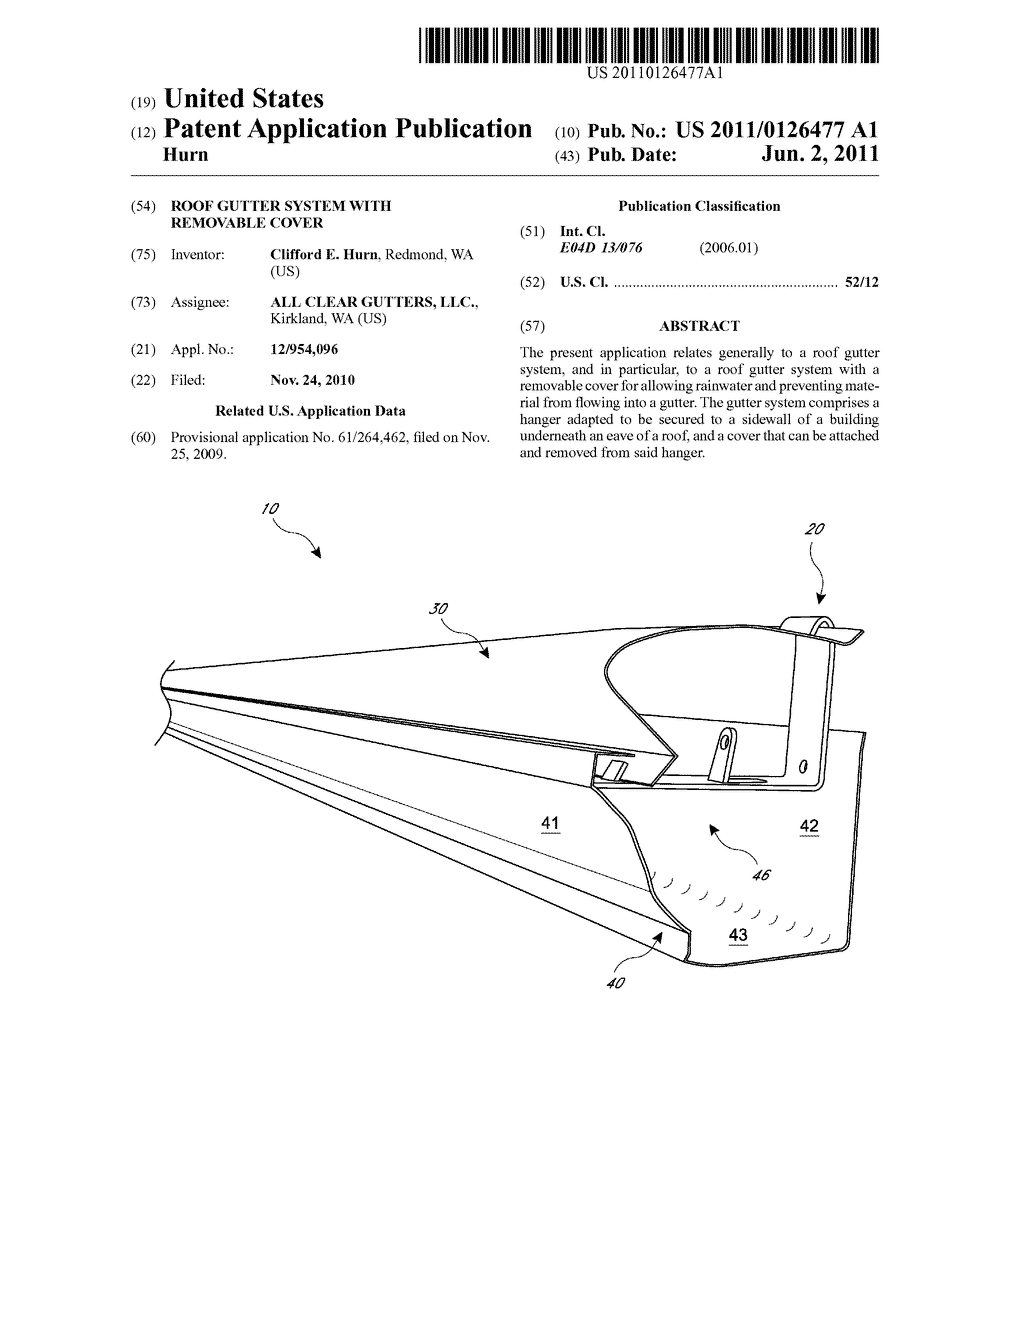 ROOF GUTTER SYSTEM WITH REMOVABLE COVER - diagram, schematic, and image 01